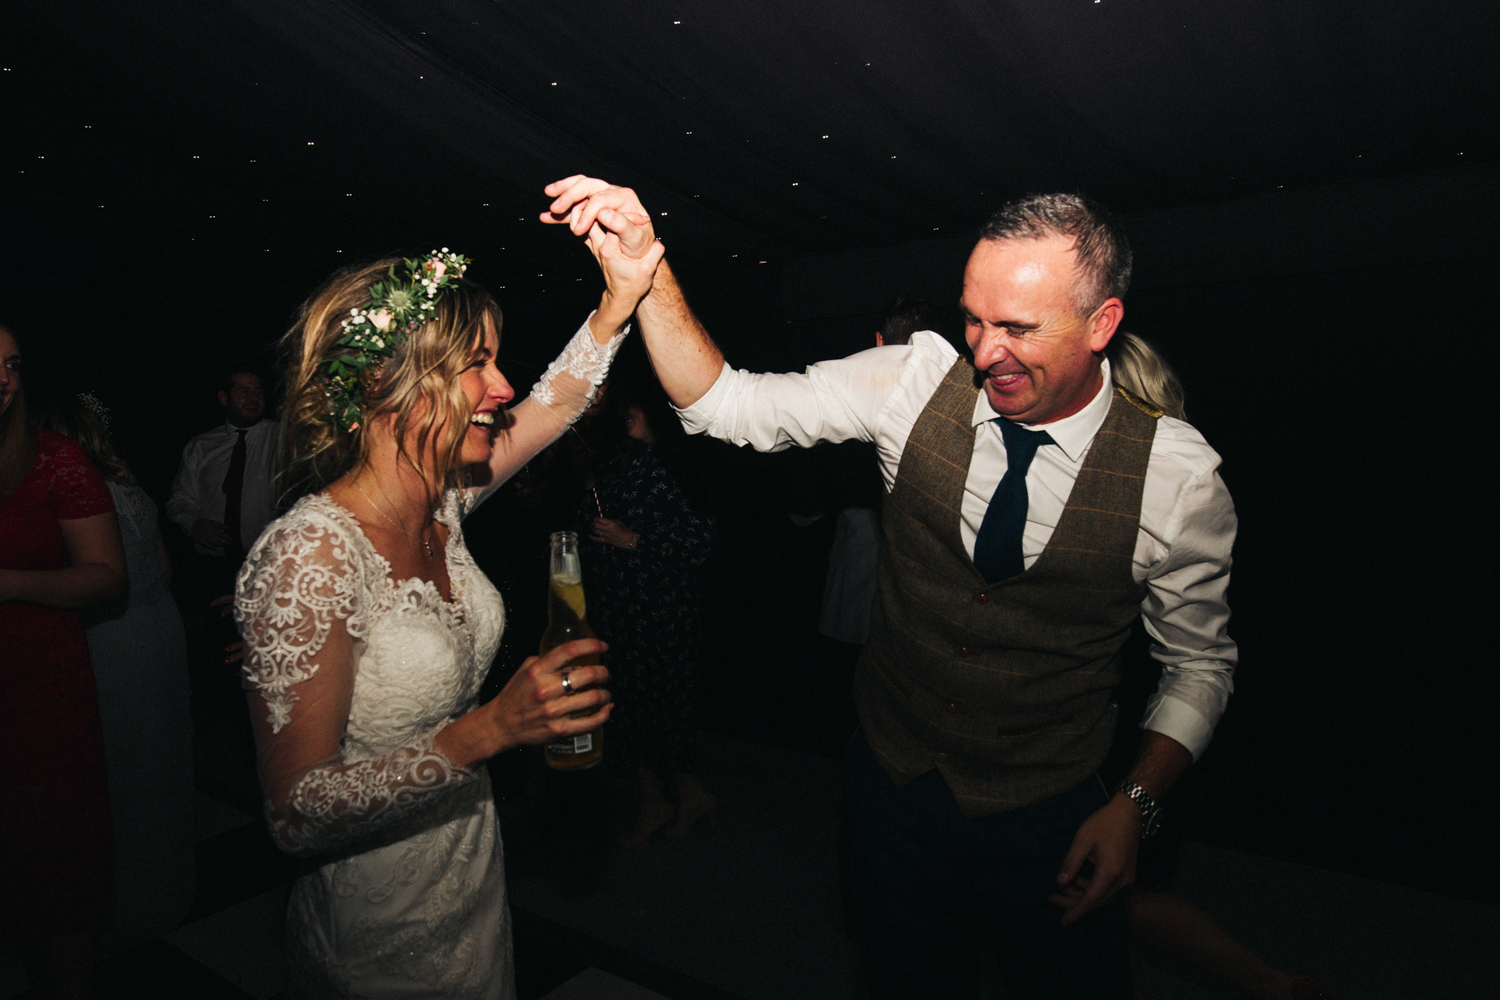 creative-relaxed-wedding-photography-stop-motion-films-teesside-north-east-yorkshire-0013.jpg